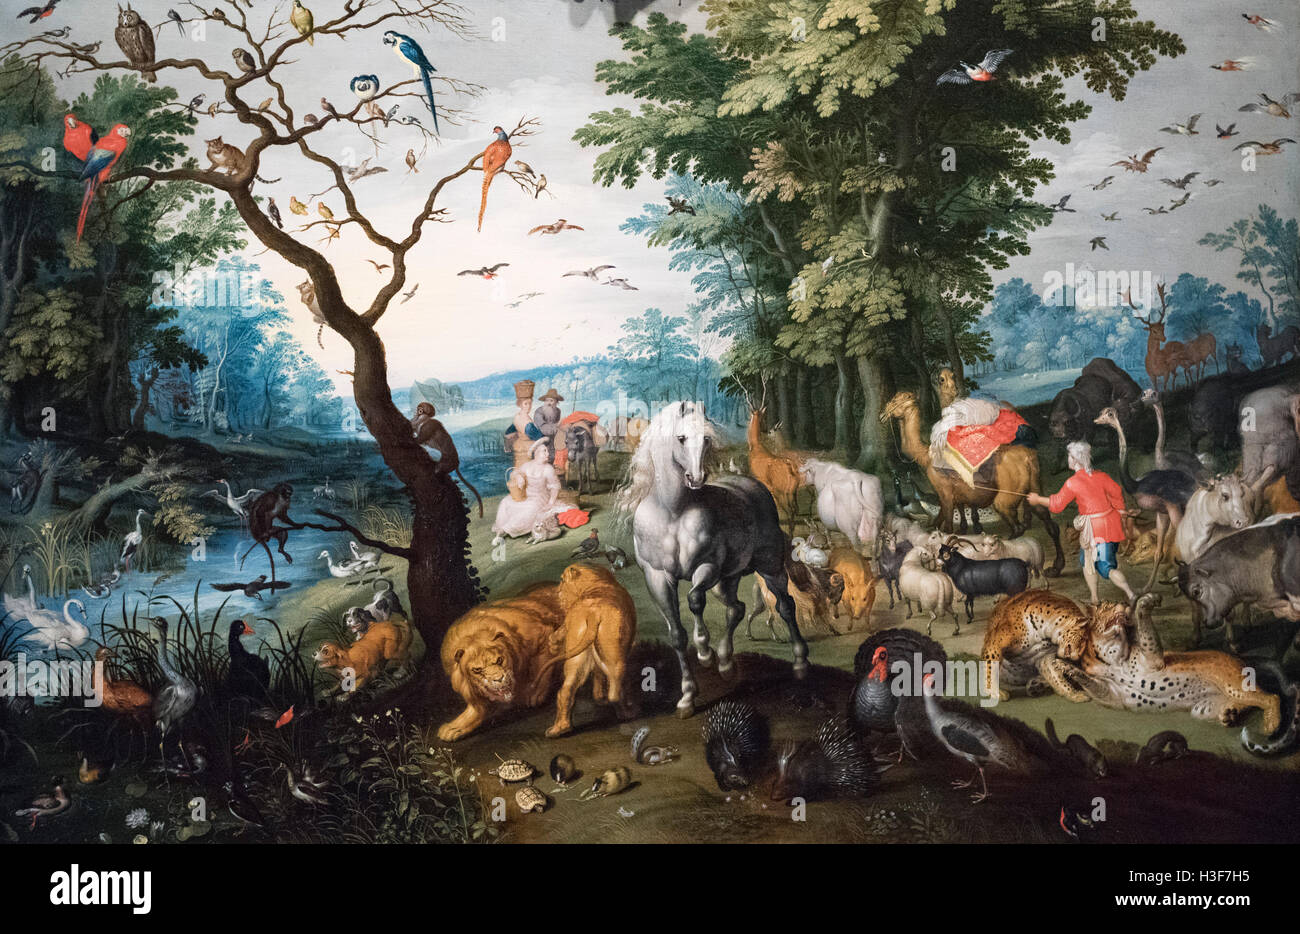 Jan Brueghel the Younger (1601-1678), The Animals Entering Noah's Ark, mid 17th century. - Stock Image